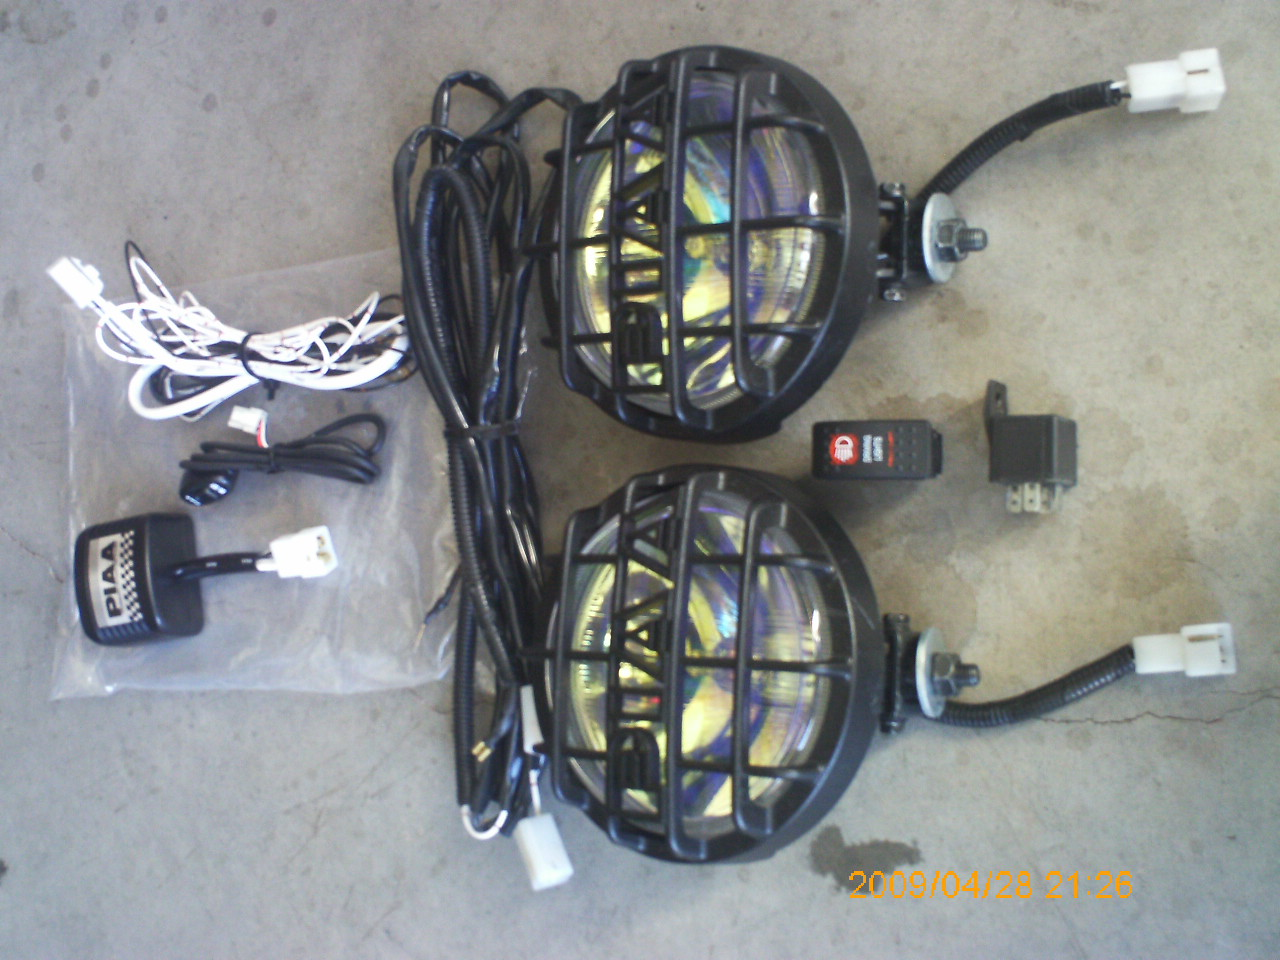 40609d1358641231 sale piaa 510 520 off road lights ptdc0008 nissan frontier forum view single post for sale piaa 510 piaa wiring harness at eliteediting.co